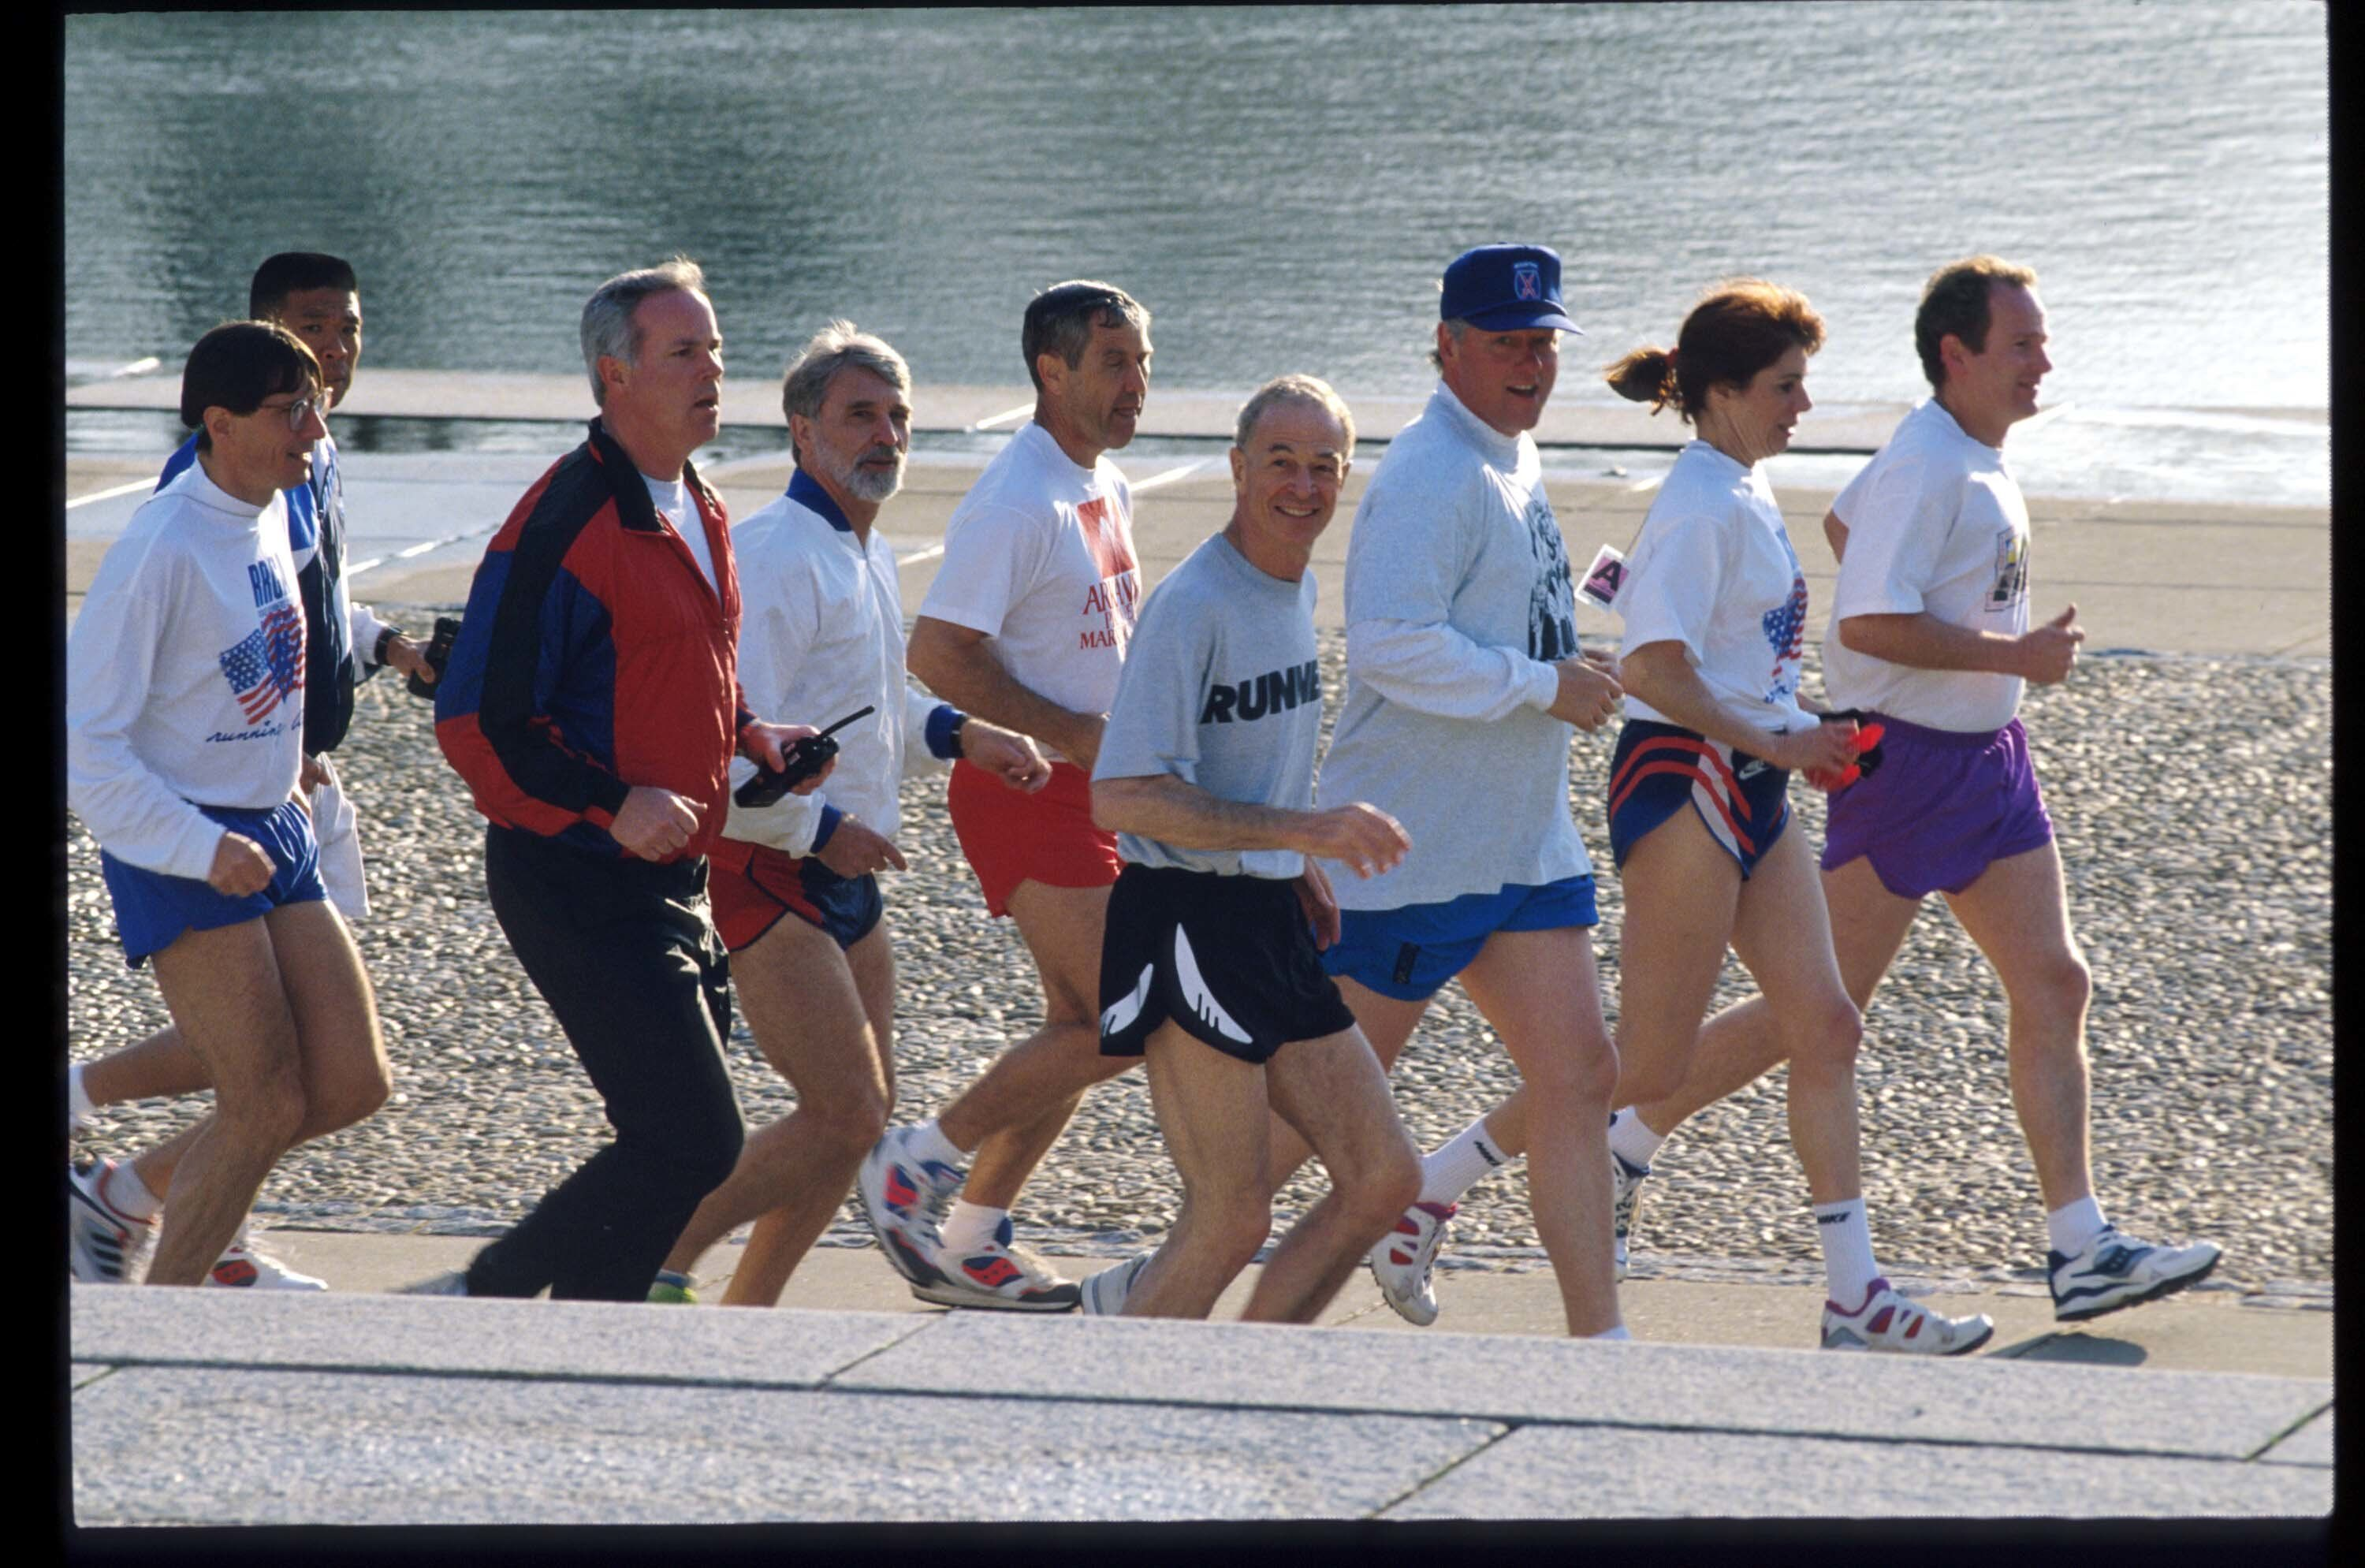 206540 01: (NO NEWSWEEK - NO USNEWS) President Bill Clinton jogs with an entourage April 7, 1994 in Washington, DC. President Clinton stays fit with a daily regimen of walking and jogging. (Photo by Diana Walker/Liaison)